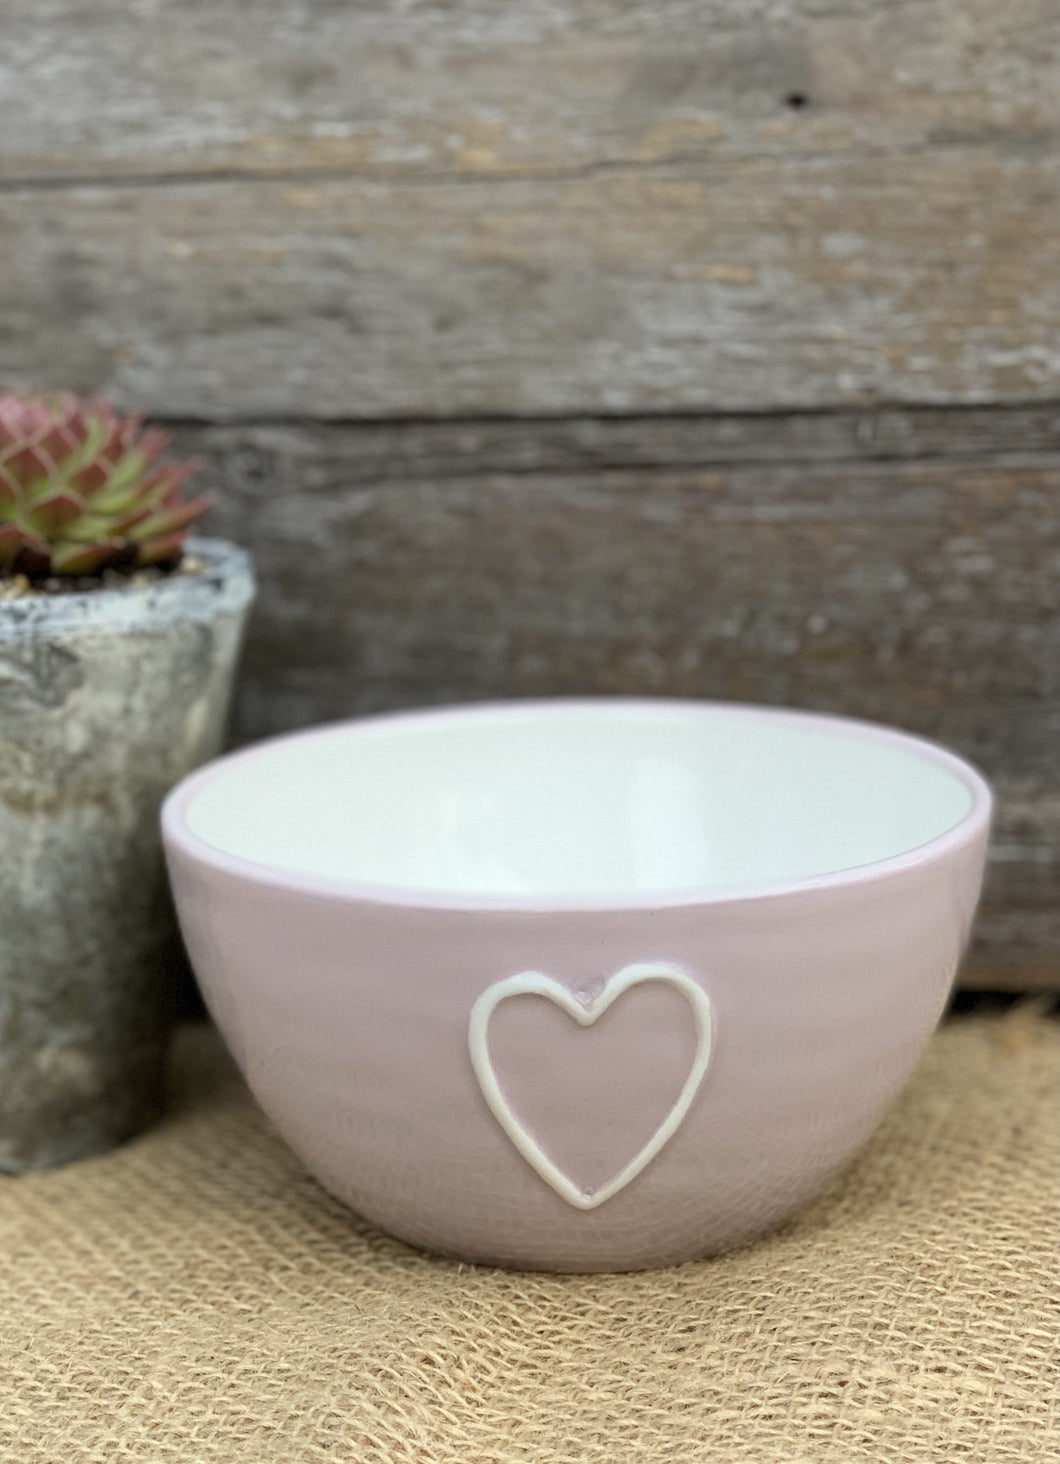 Hand Painted Pink Heart Earthenware Bowl - Abigailshome